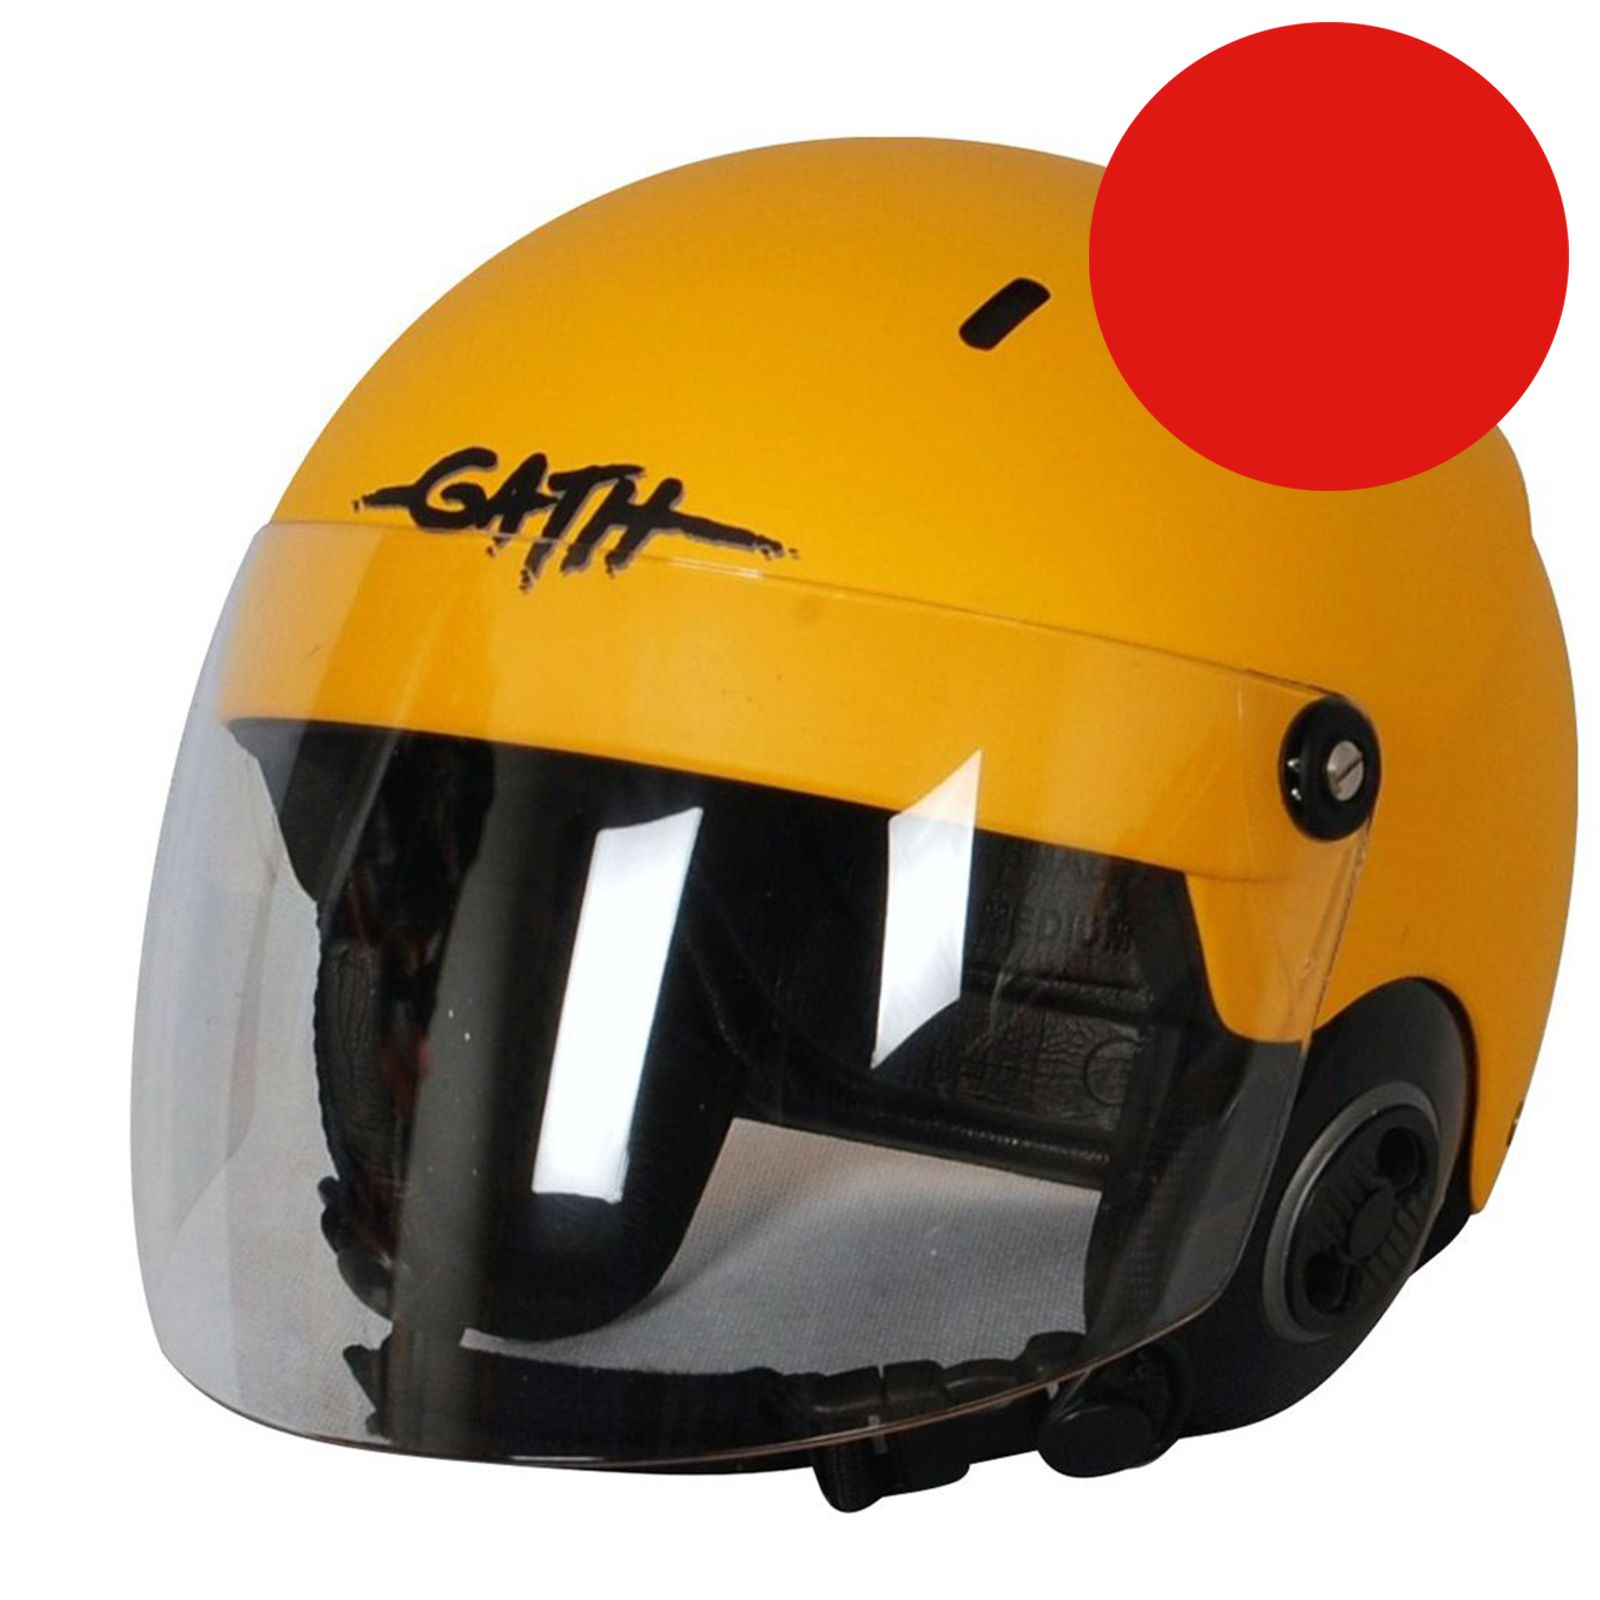 GATH Helm RESCUE Safety Rot matt Gr S mit klarem Vollvisier